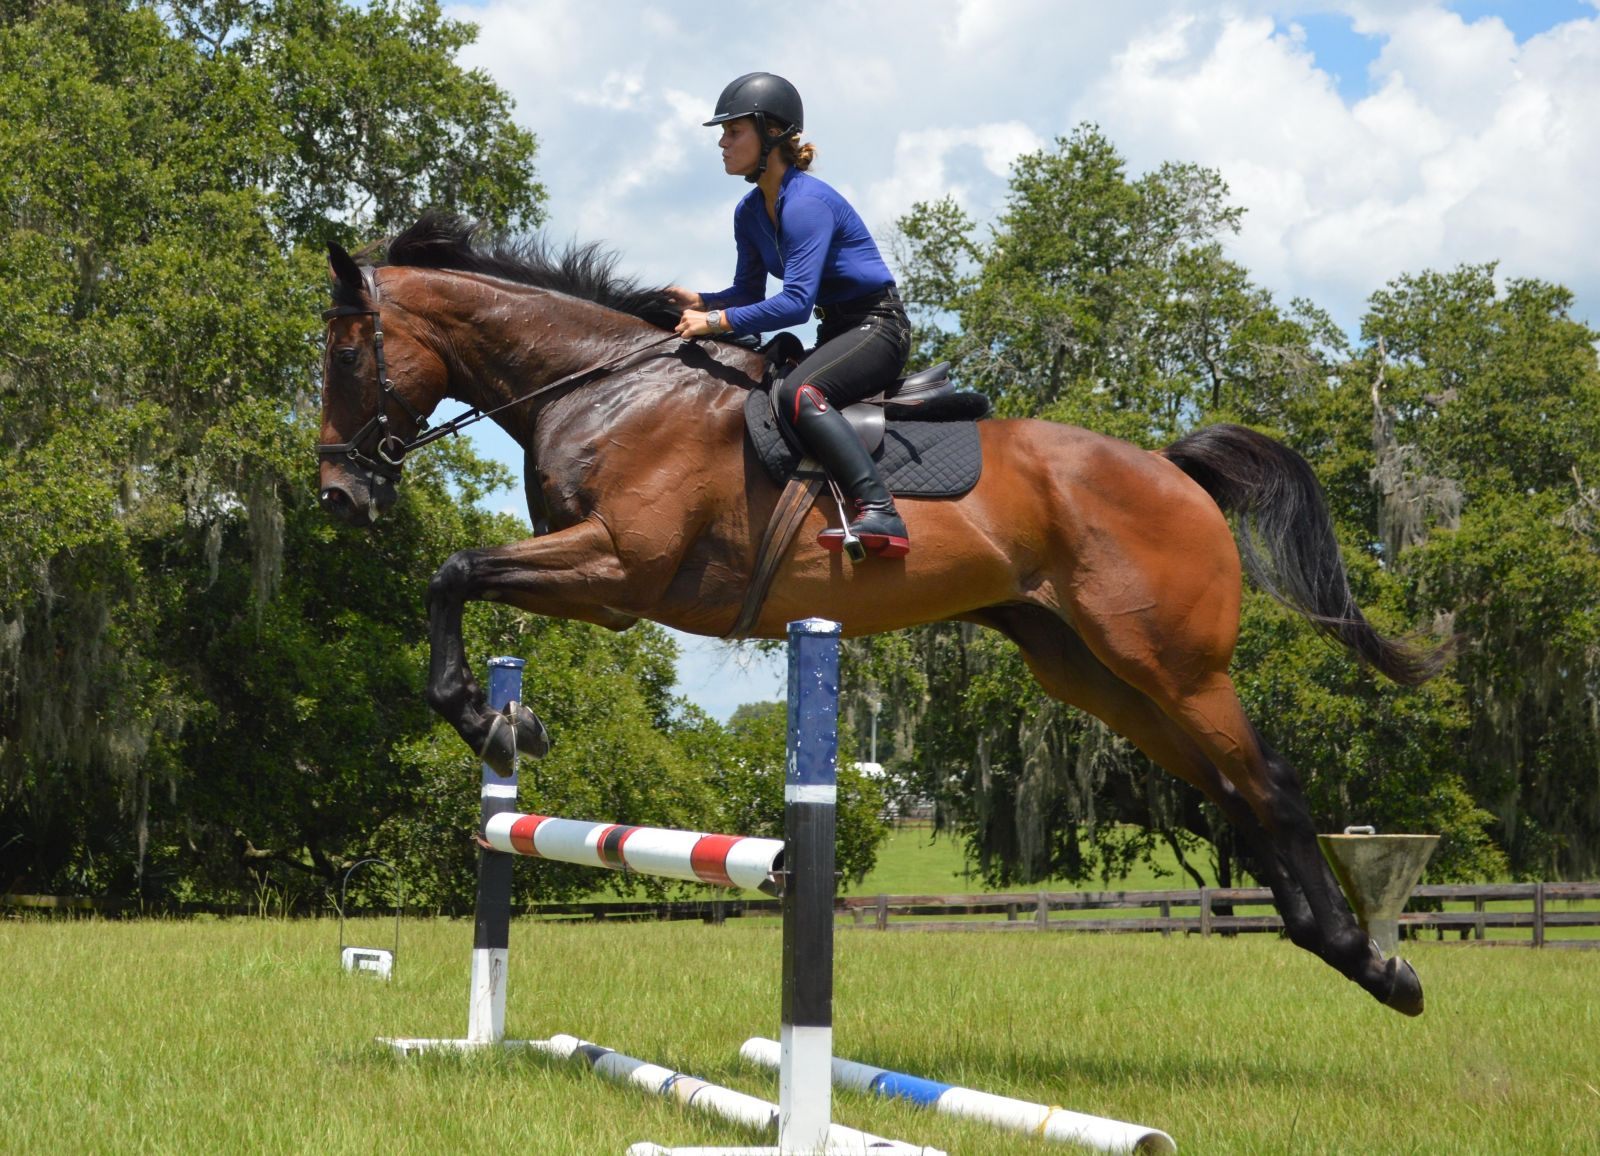 Sport Horse Nation Spotlight 5 Bay Thoroughbred Geldings Eventing Nation Three Day Eventing News Results Videos And Commentary